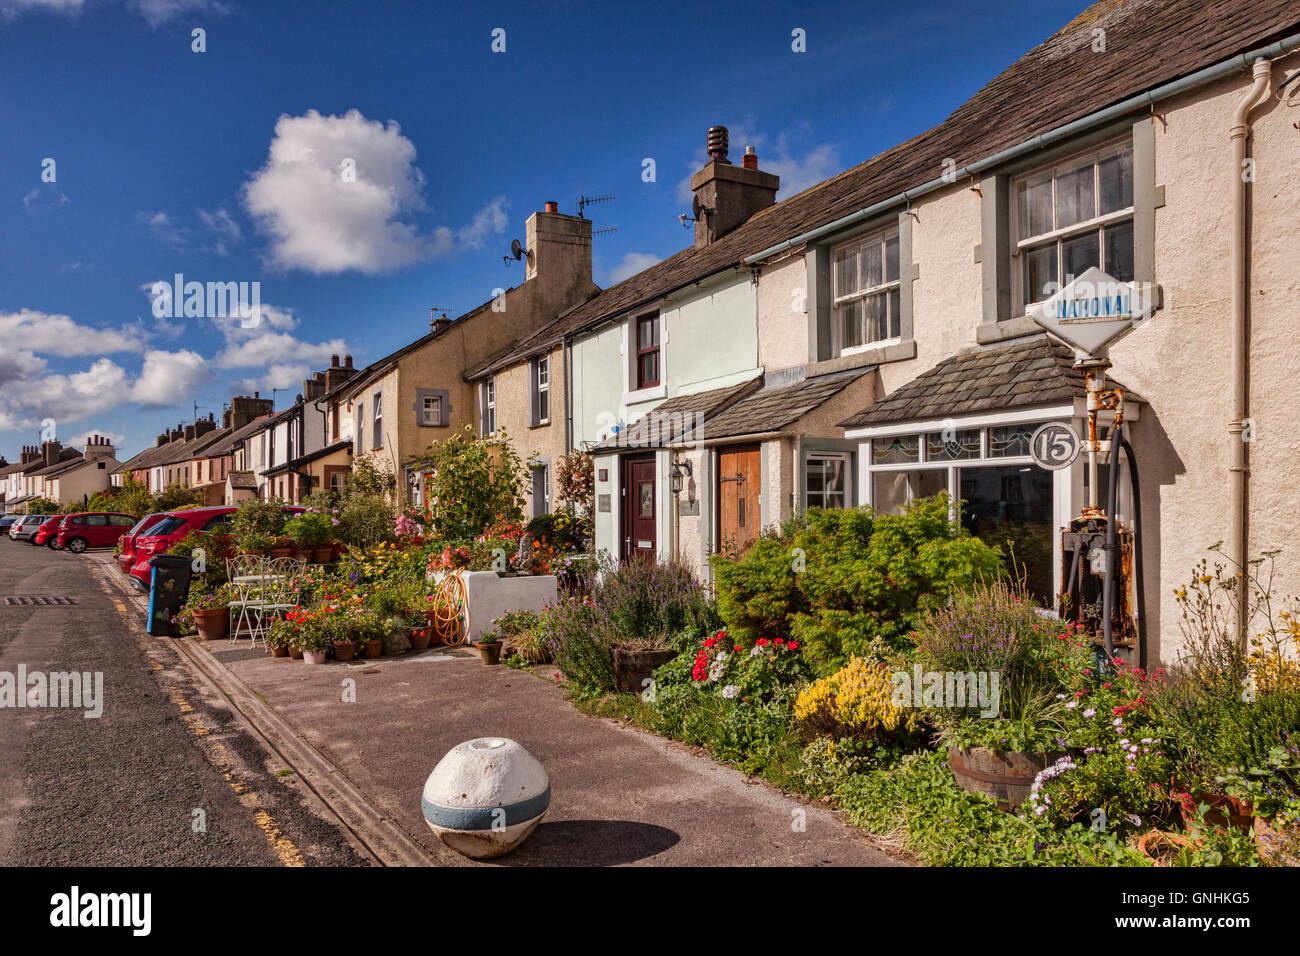 Row of cottages with lovely summer gardens in Main Street, Ravenglass, Cumbria, England, UK - Stock Image